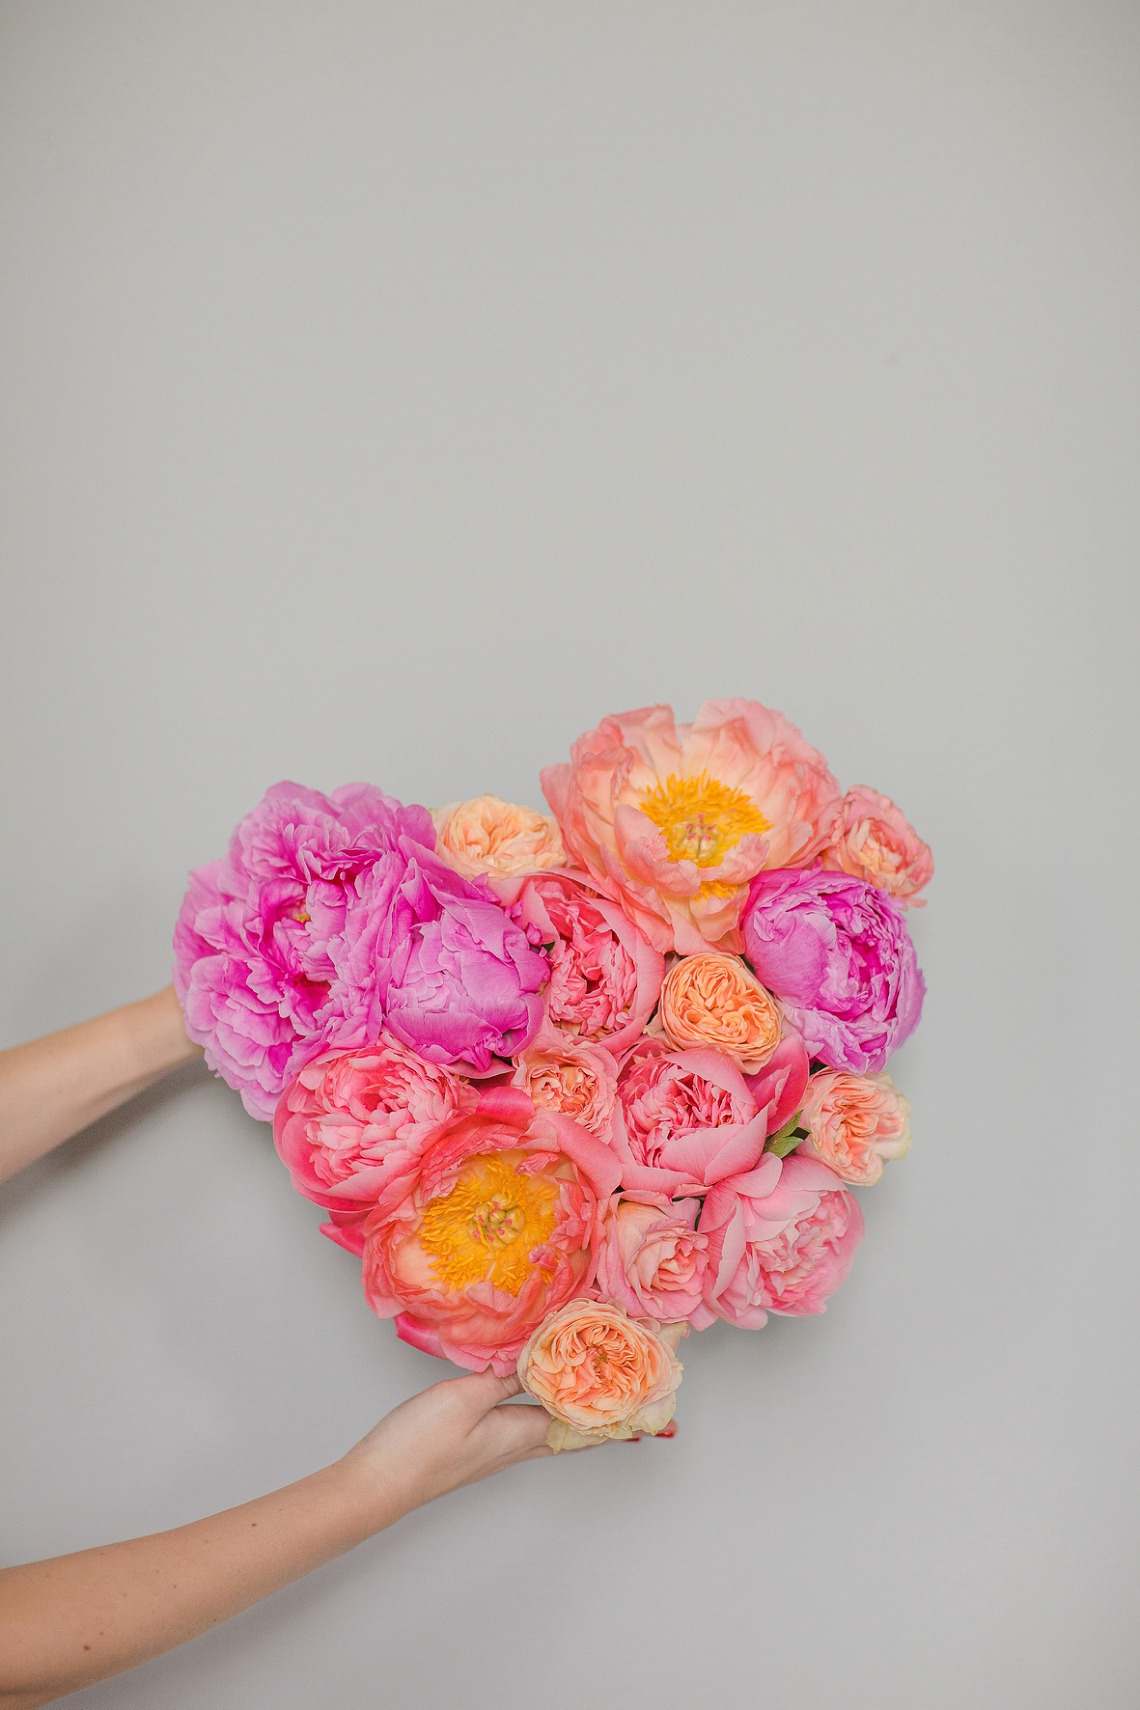 Fresh Floral Heart DIY with Roses & Peonies (12)